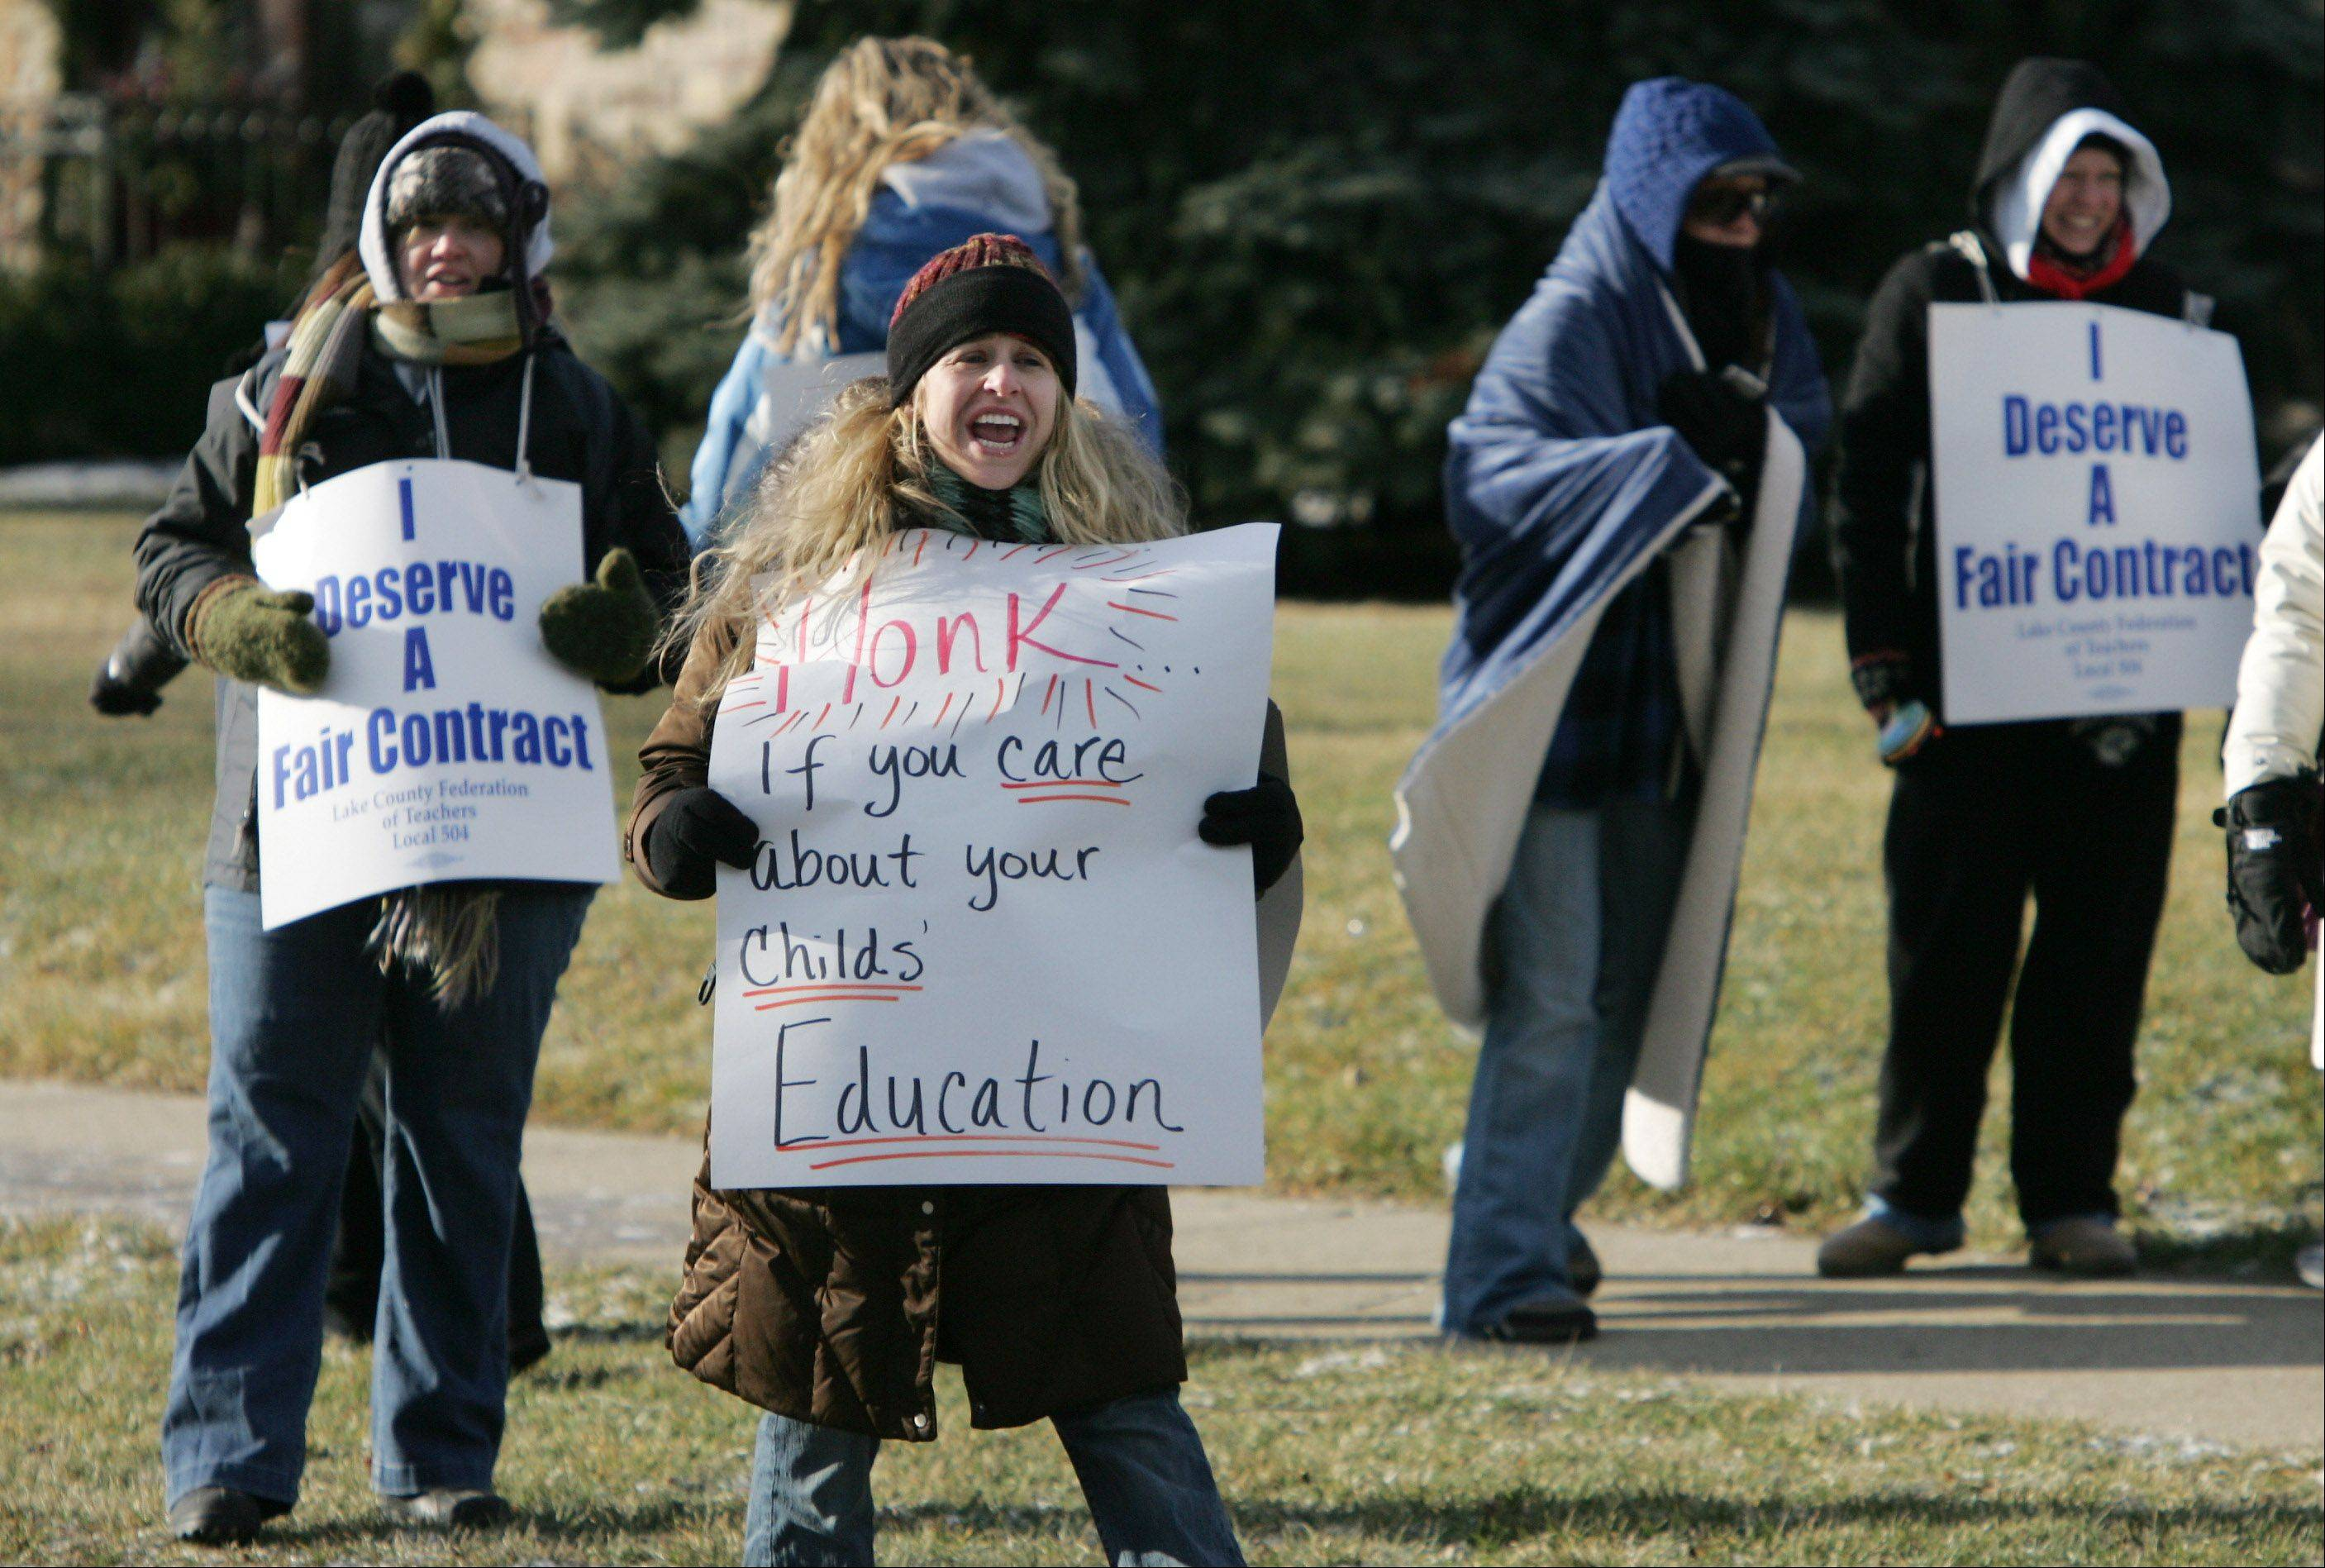 Grayslake Middle School teacher Wendy Chiswick looks for support from passing traffic as Grayslake Elementary School District 46 teachers walk the picket line outside Grayslake Middle School in January.